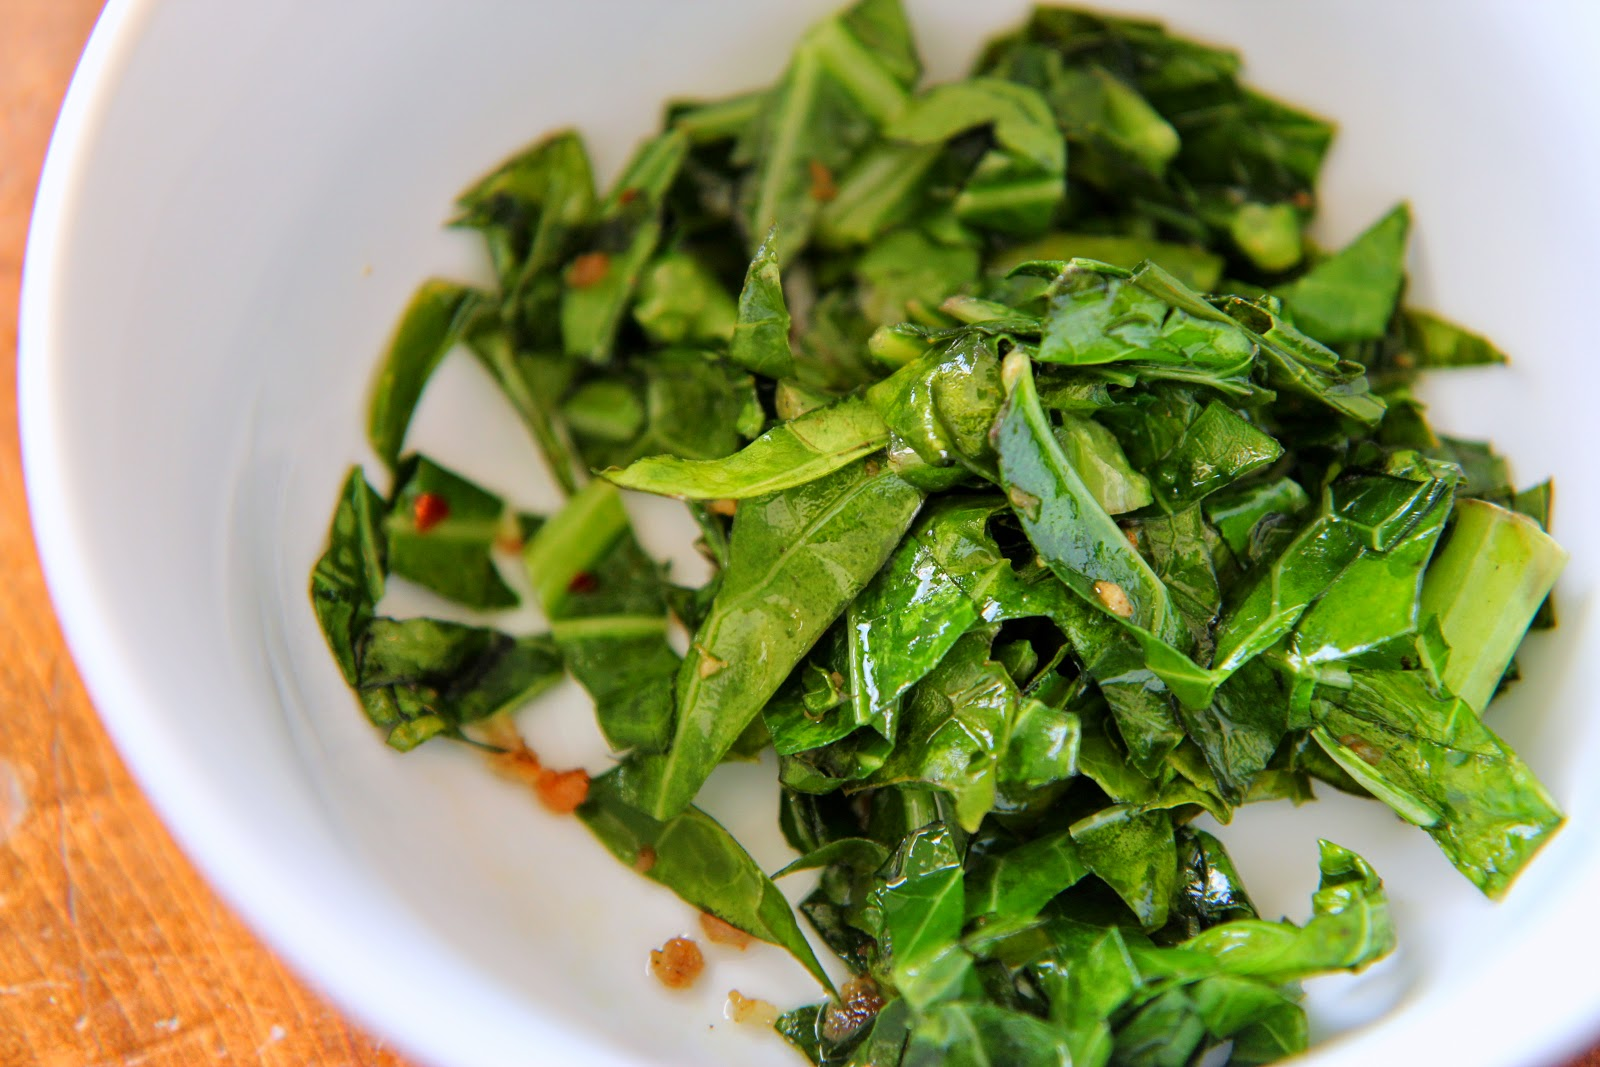 Ways to Use Leftover Collard Greens